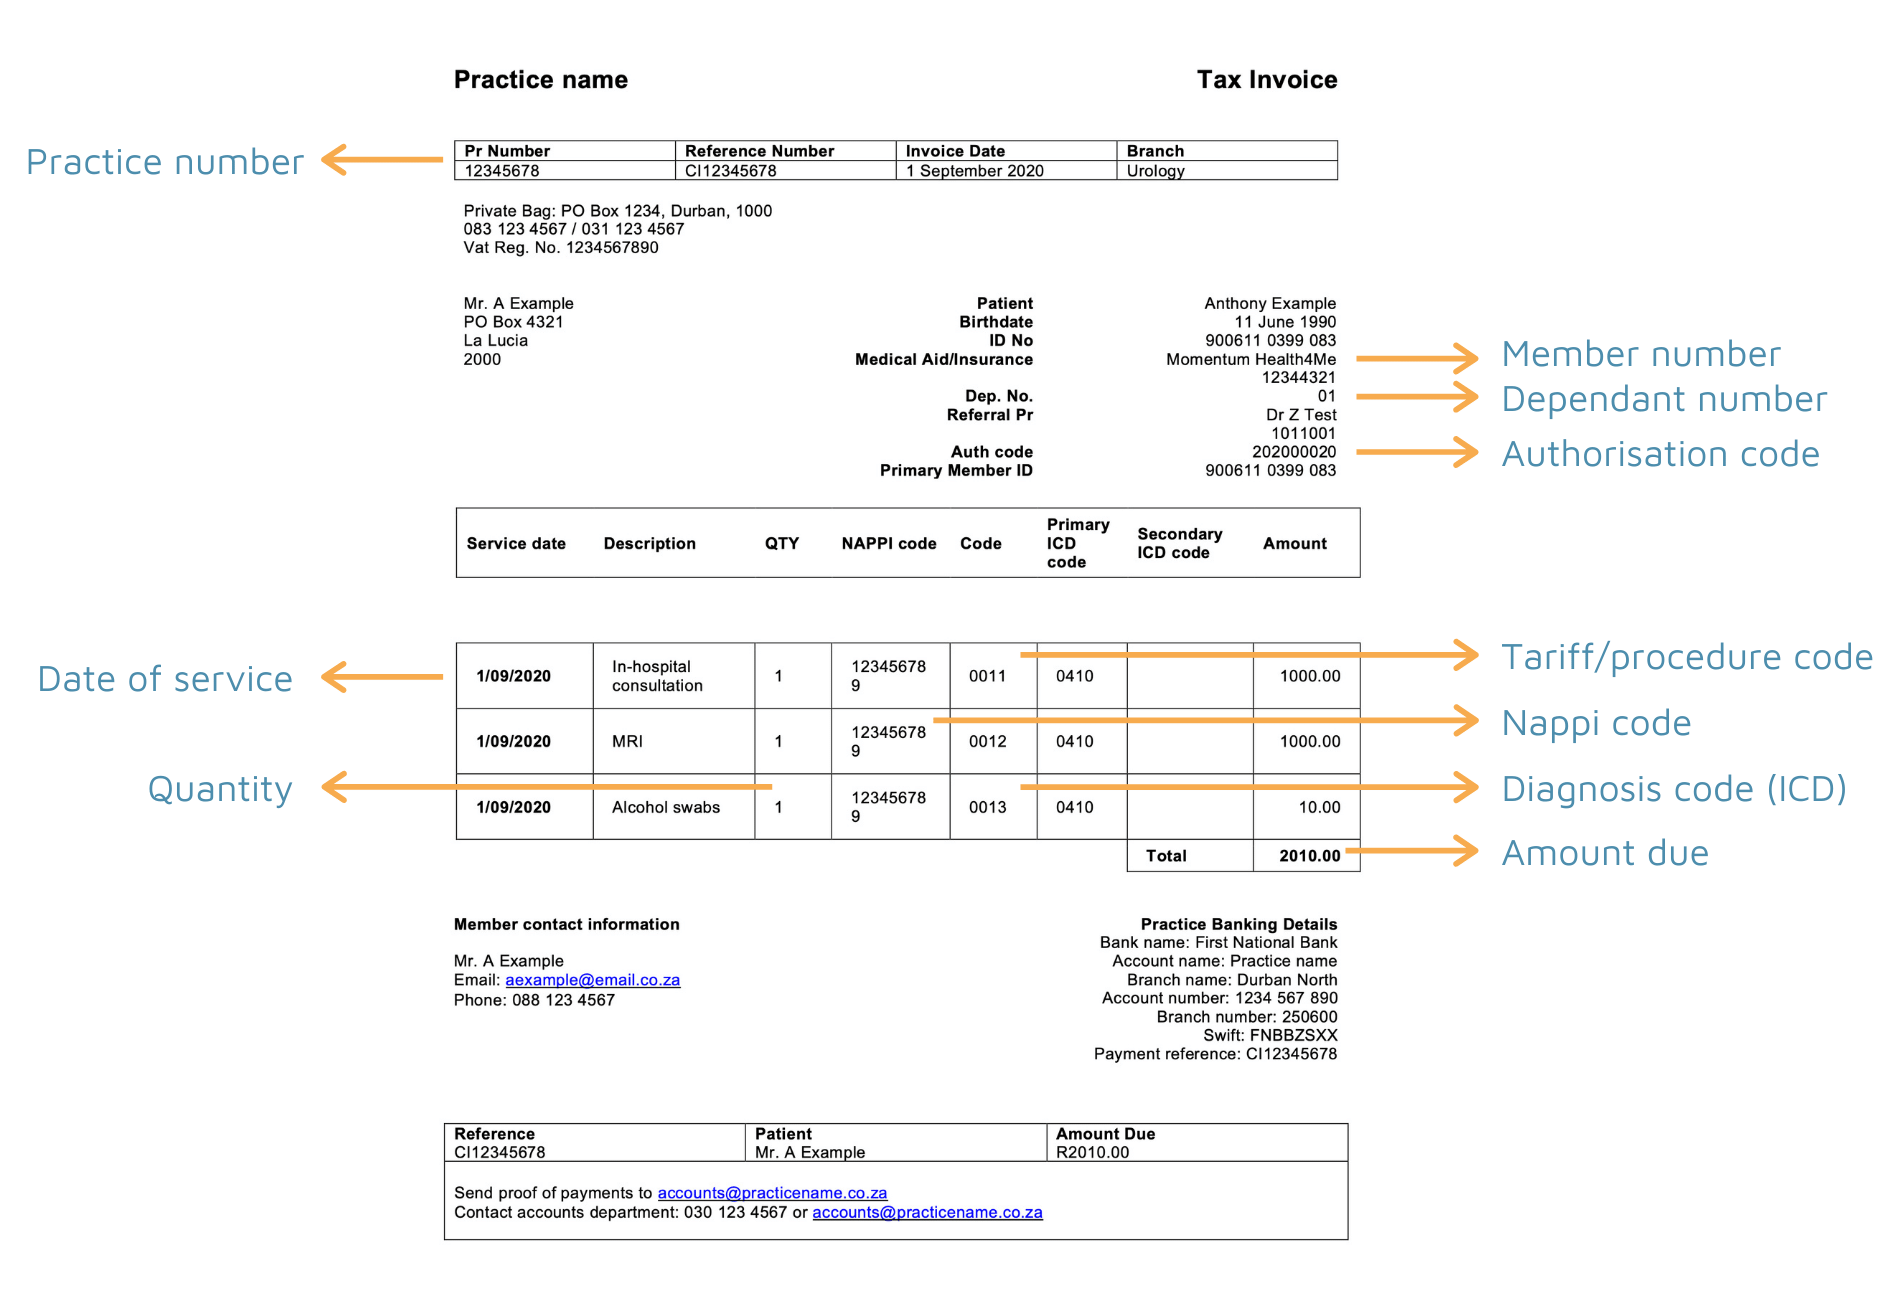 Example medical invoice requirements for submitting a claim